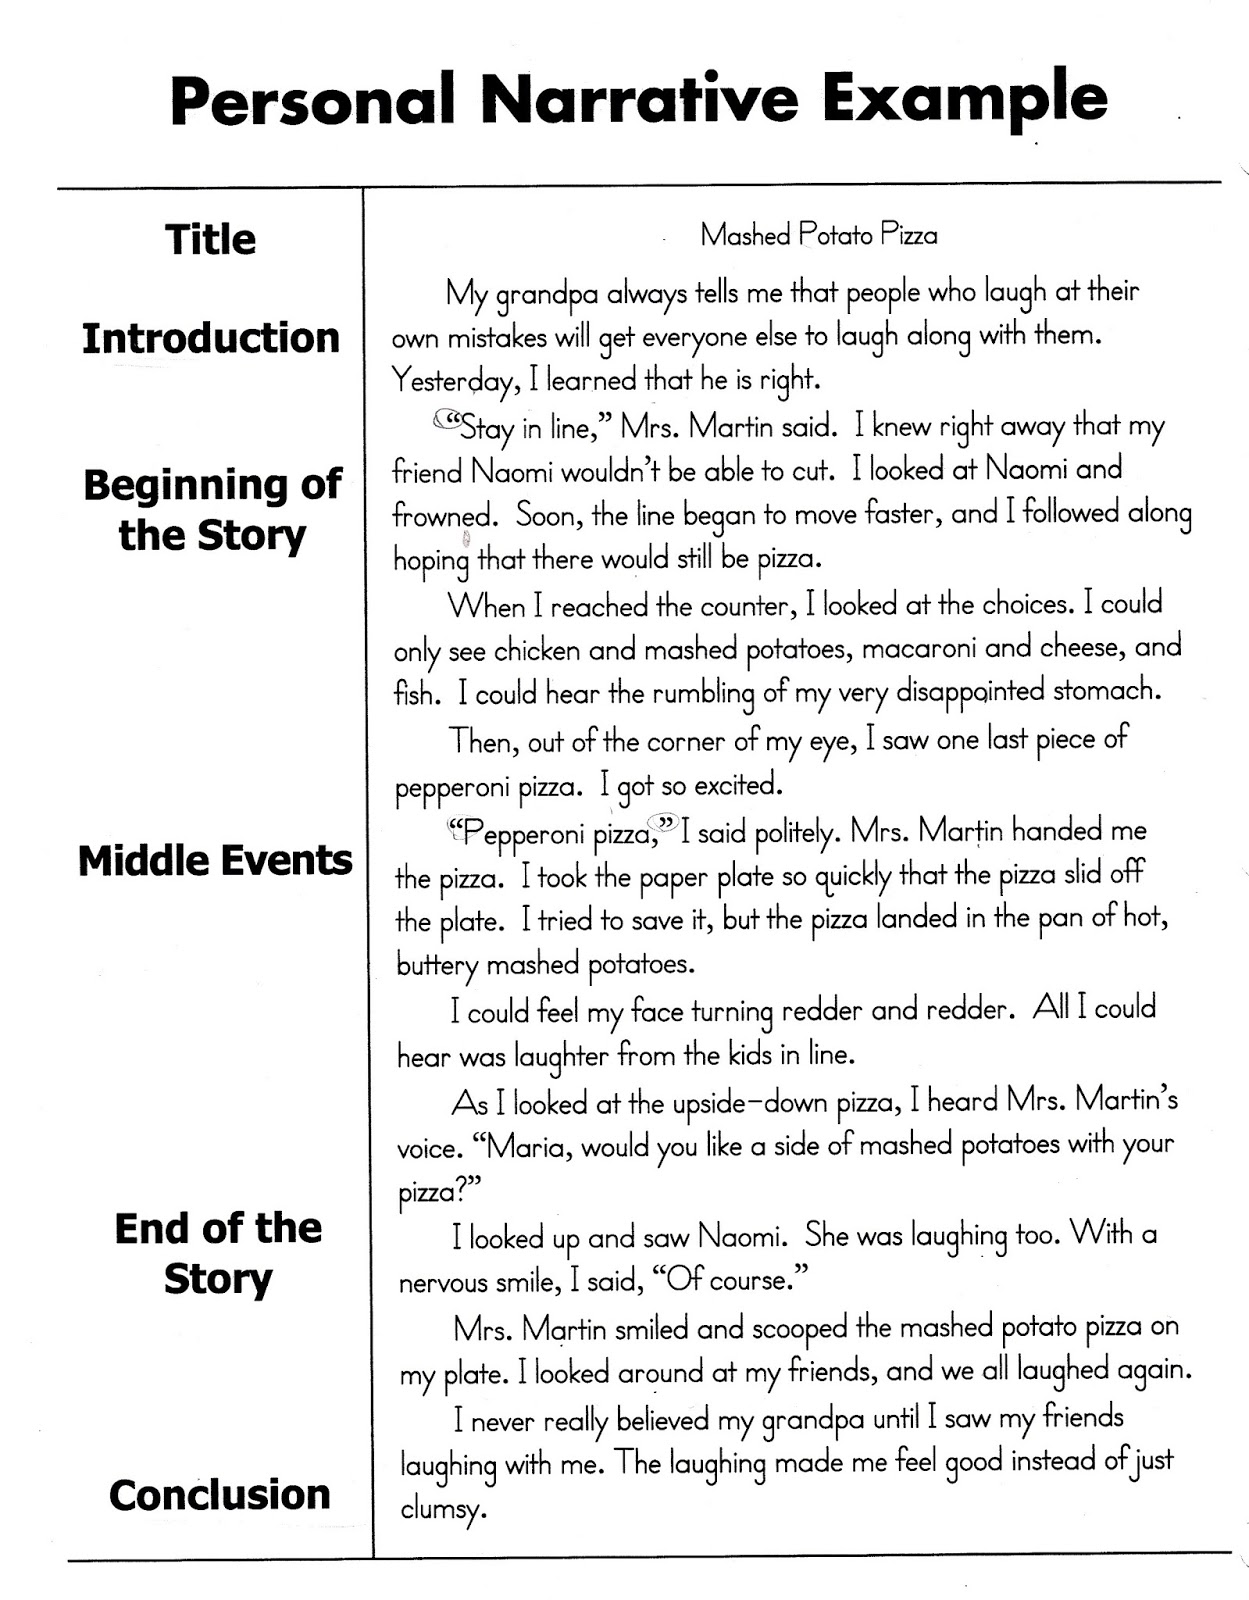 structure of an narrative essay To write an essay that will be scholarly, you will absolutely need an outline that outline will serve as the map for your writing and will keep you from getting off track and rambling let's suppose you have decided that public college education should be free you have finished all of your research, and you are ready to structure the essay itself.